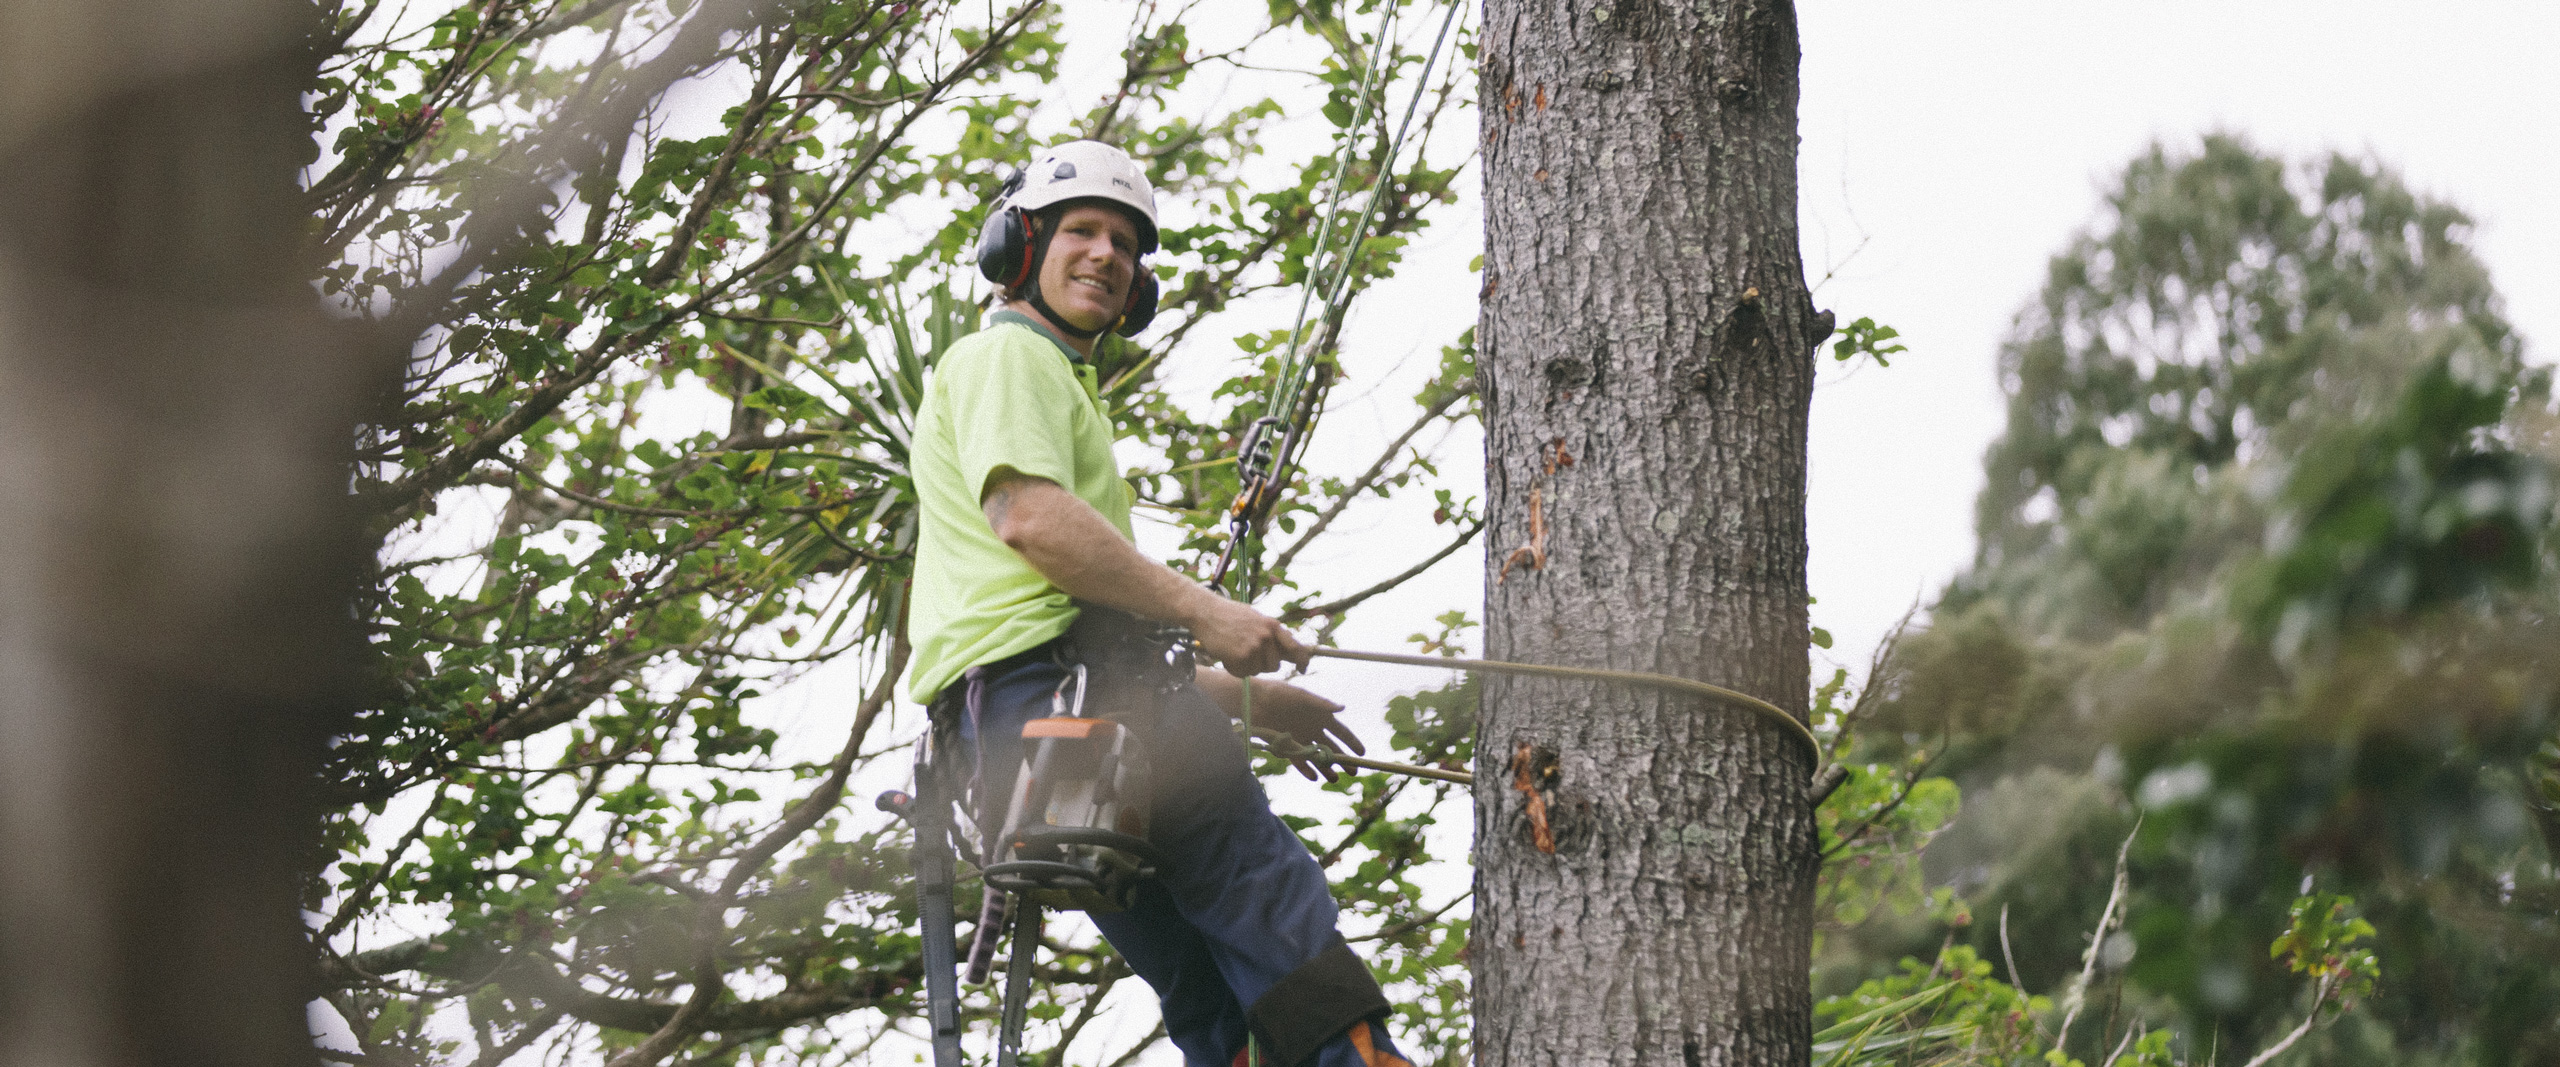 Eagle Eye Tree Services is owned and operated by fully qualified and experienced arborist, Matt Blainey